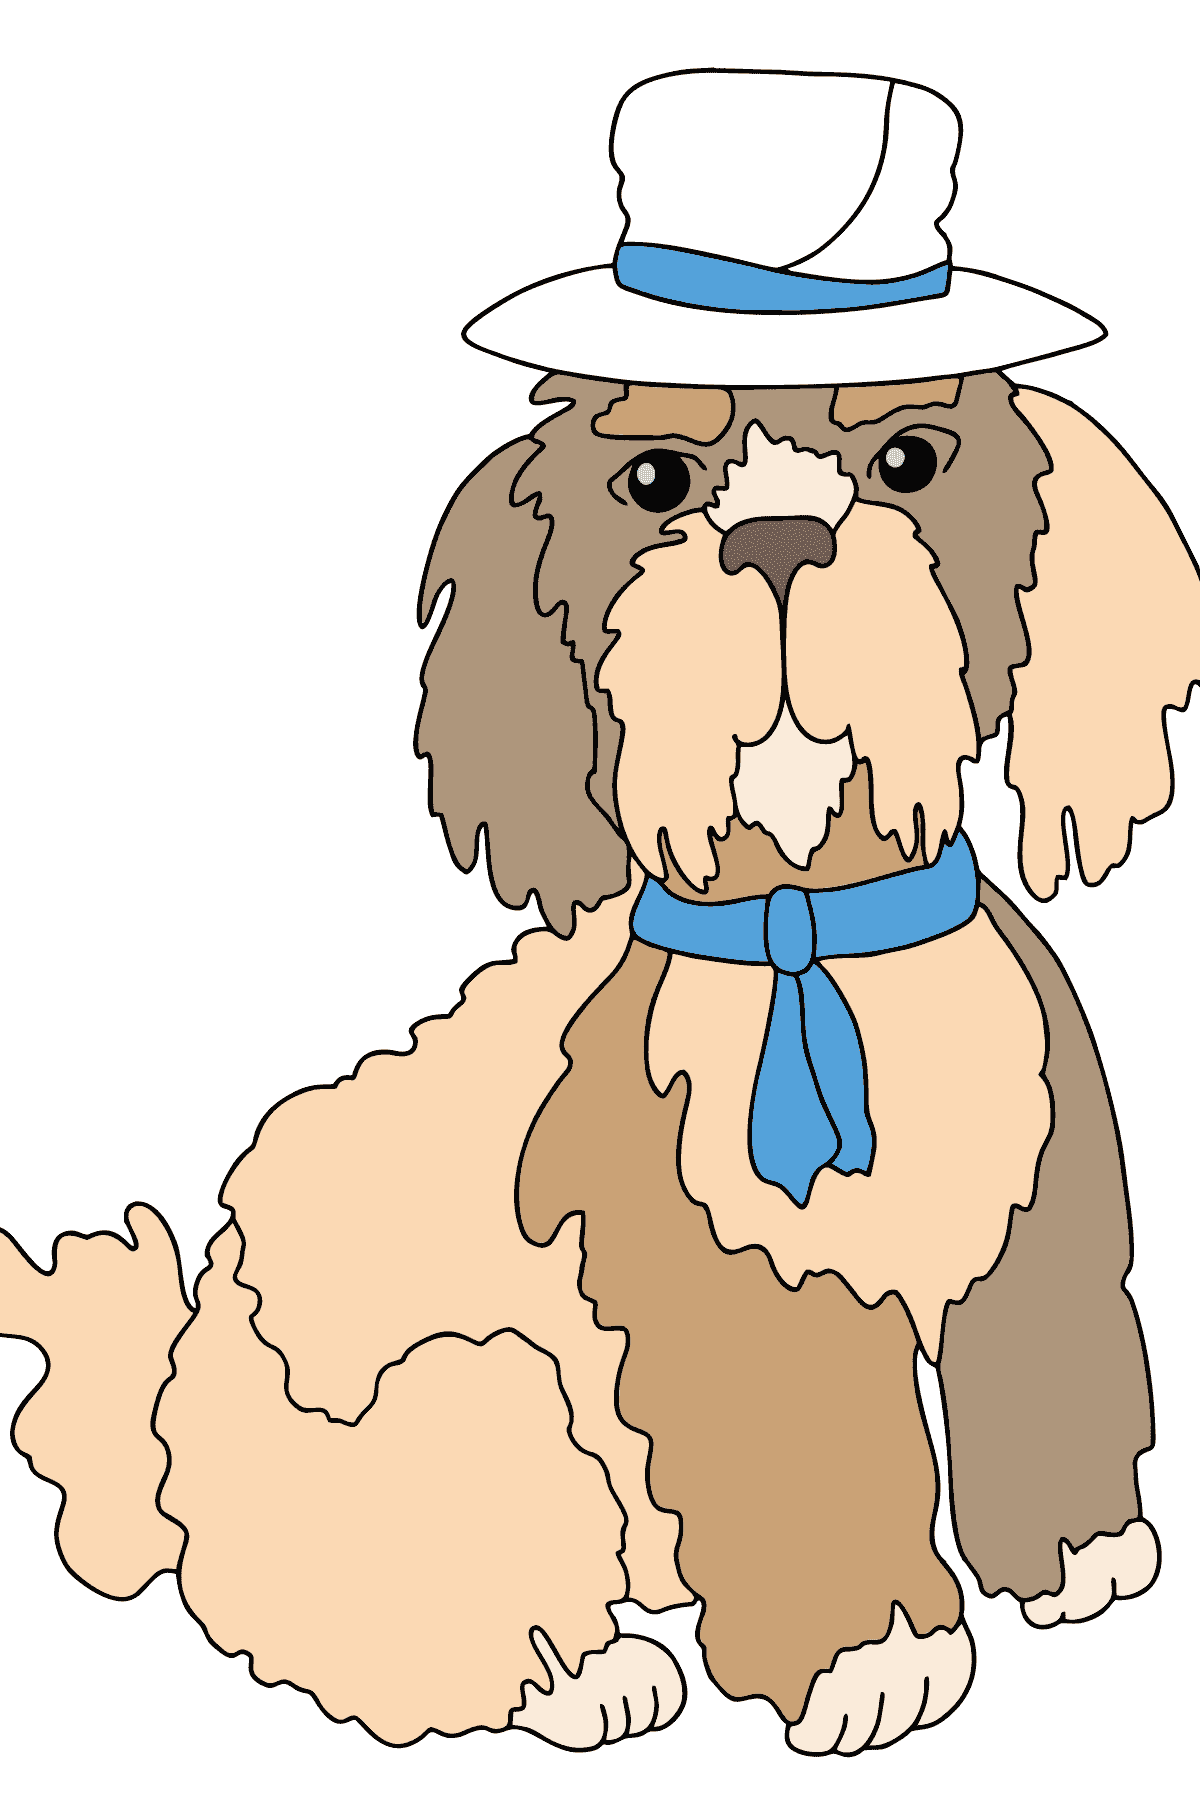 Coloring Pages with Dogs